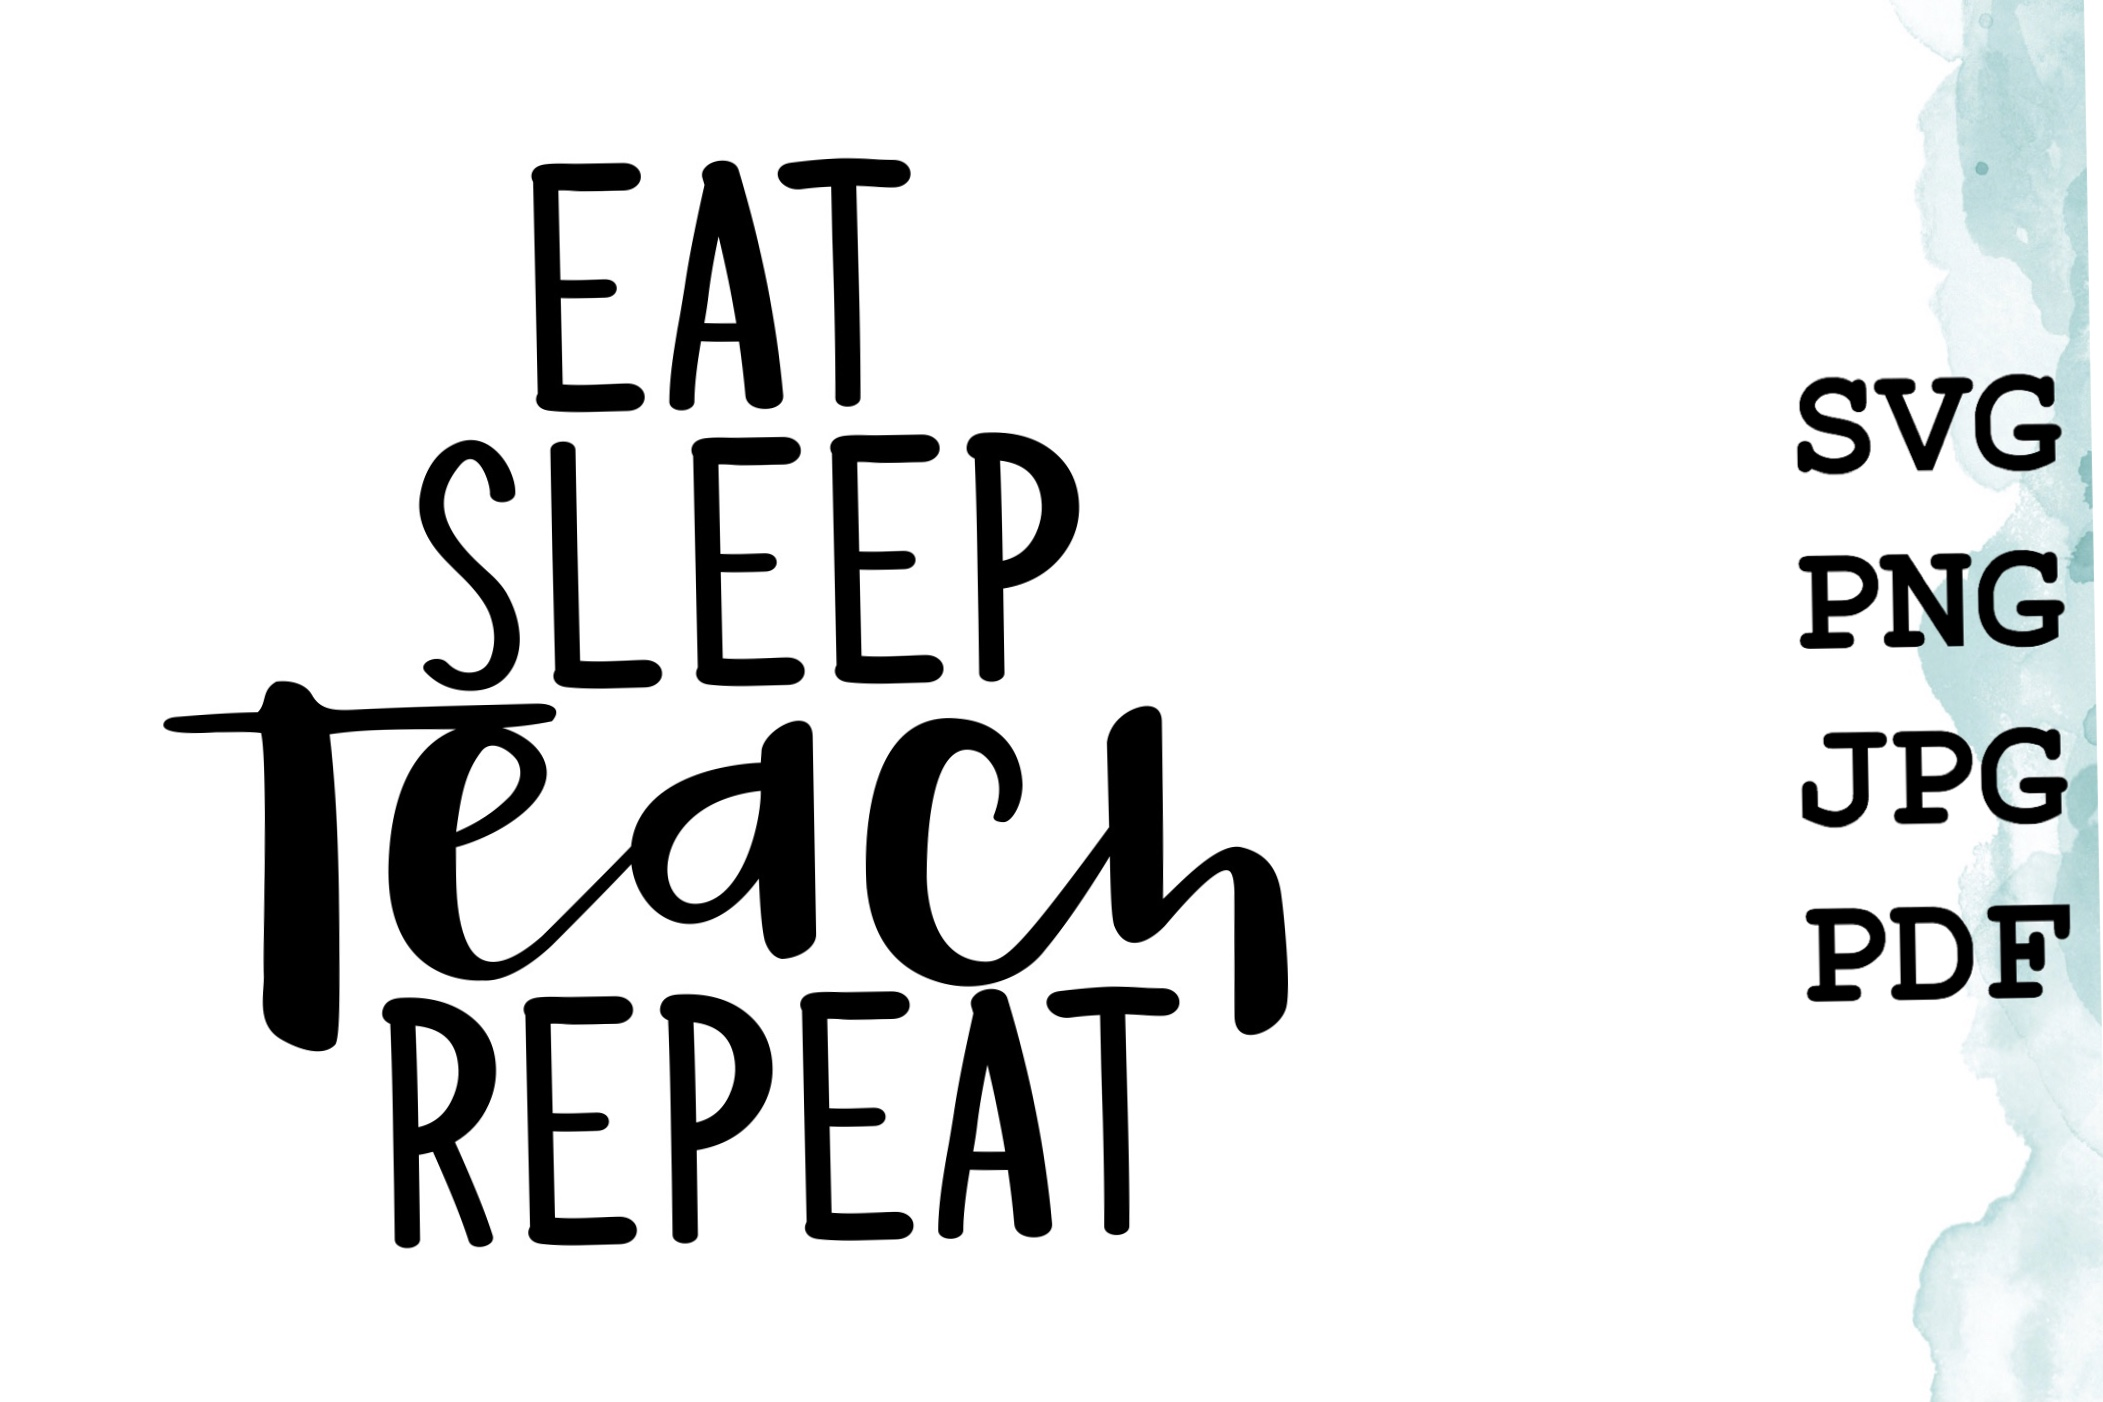 Download Free Eat Sleep Teach Repeat Graphic By Talia Smith Creative Fabrica for Cricut Explore, Silhouette and other cutting machines.